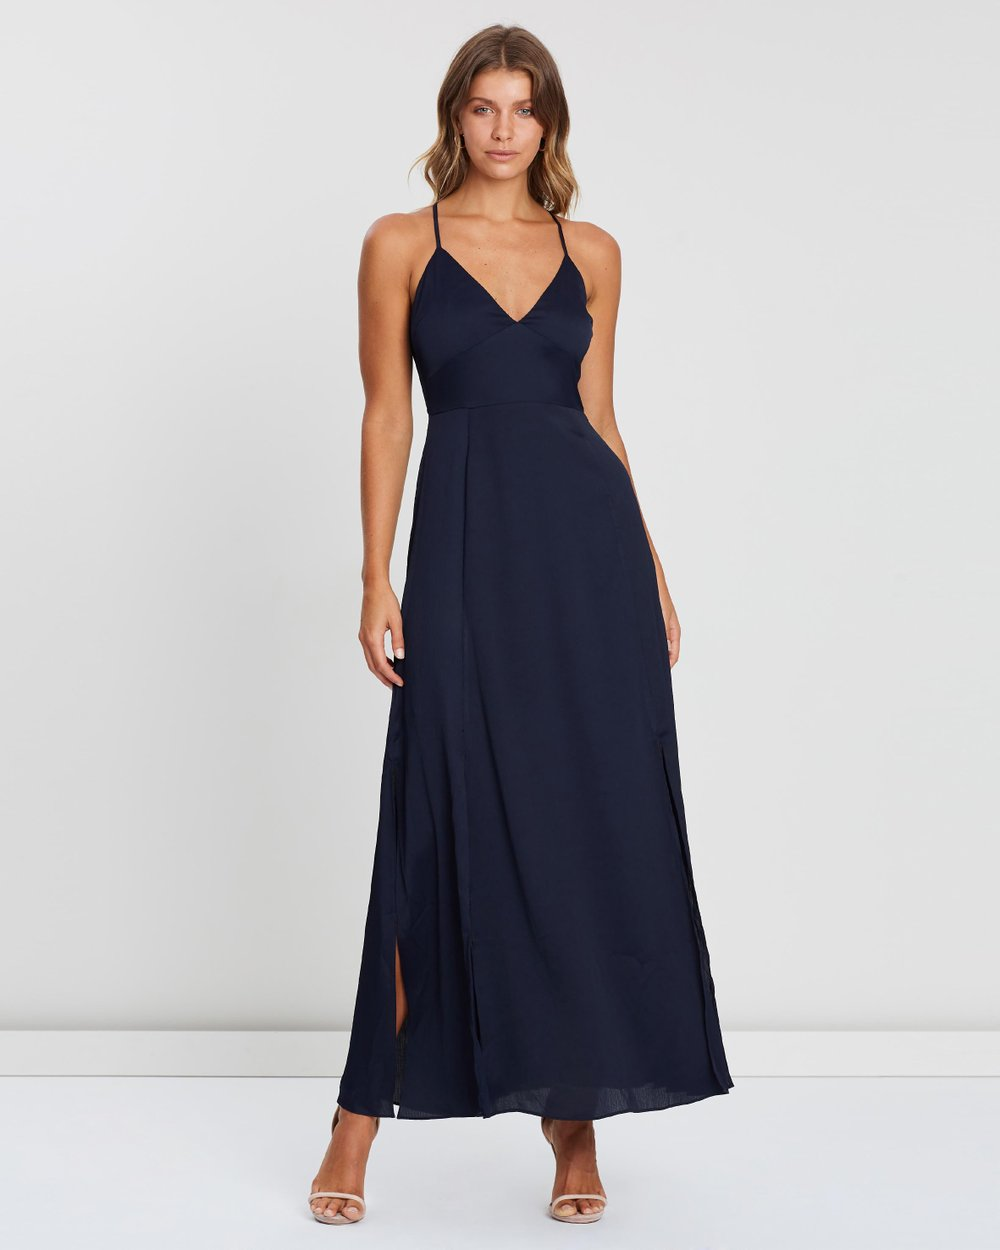 ebd1a913d2d4 ICONIC EXCLUSIVE - Maxi Dress with Splits by Atmos Here Online